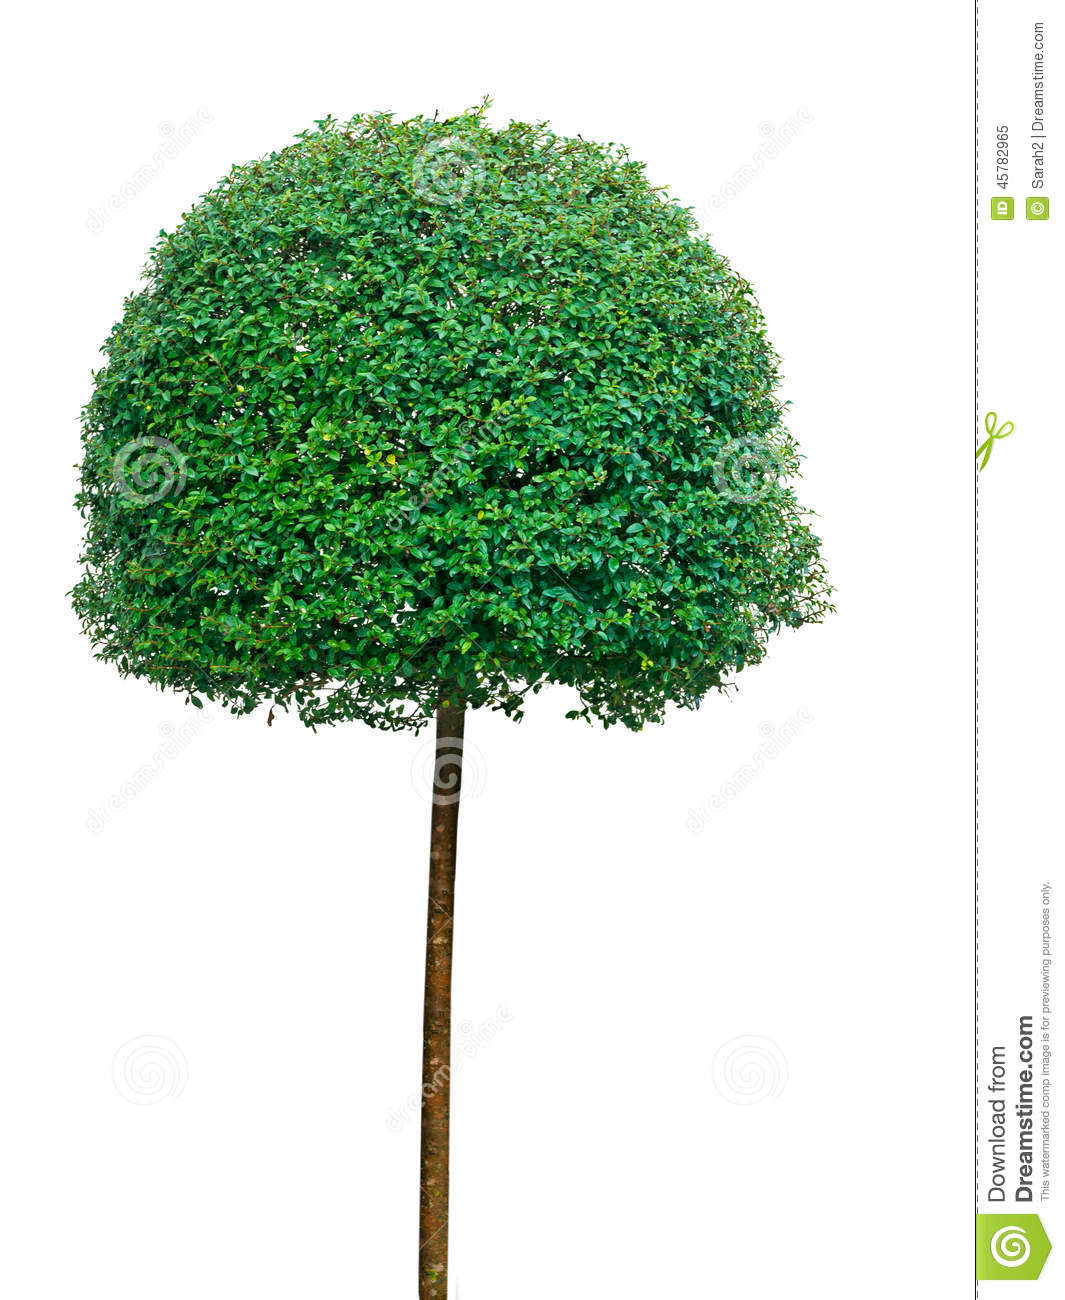 Topiary Tree Over White Background Stock Image Image Of Background Evergreen 45782965